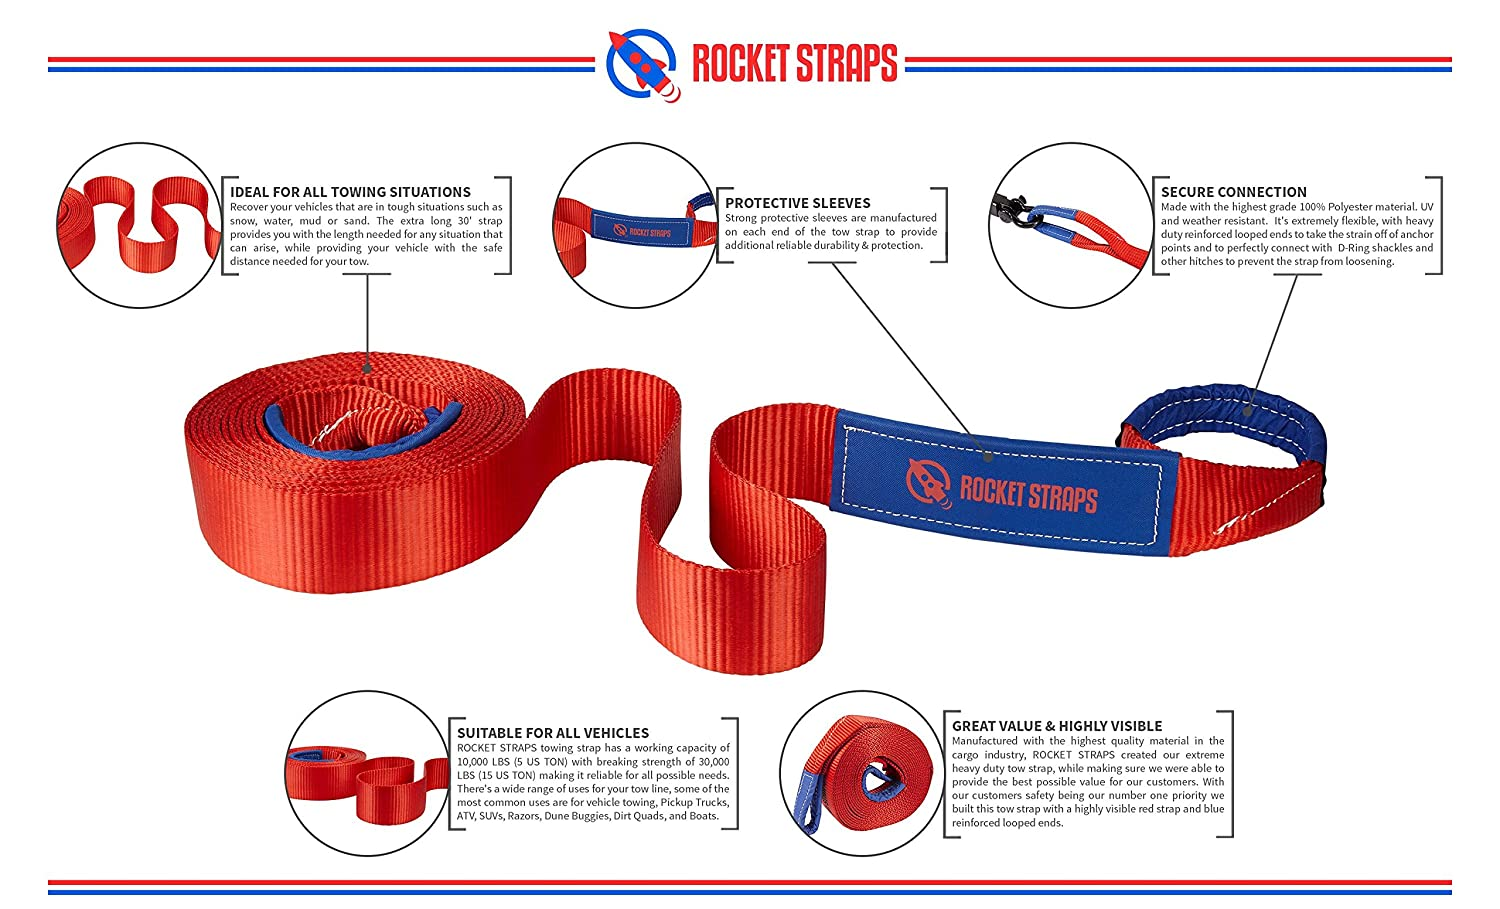 Rocket Straps 3 X 30 Extreme Heavy Duty Tow Strap Wide Range Pickup Diagram 30000 Lbs 15 Us Ton Rated Capacity Vehicle With Reinforced Loop Ends